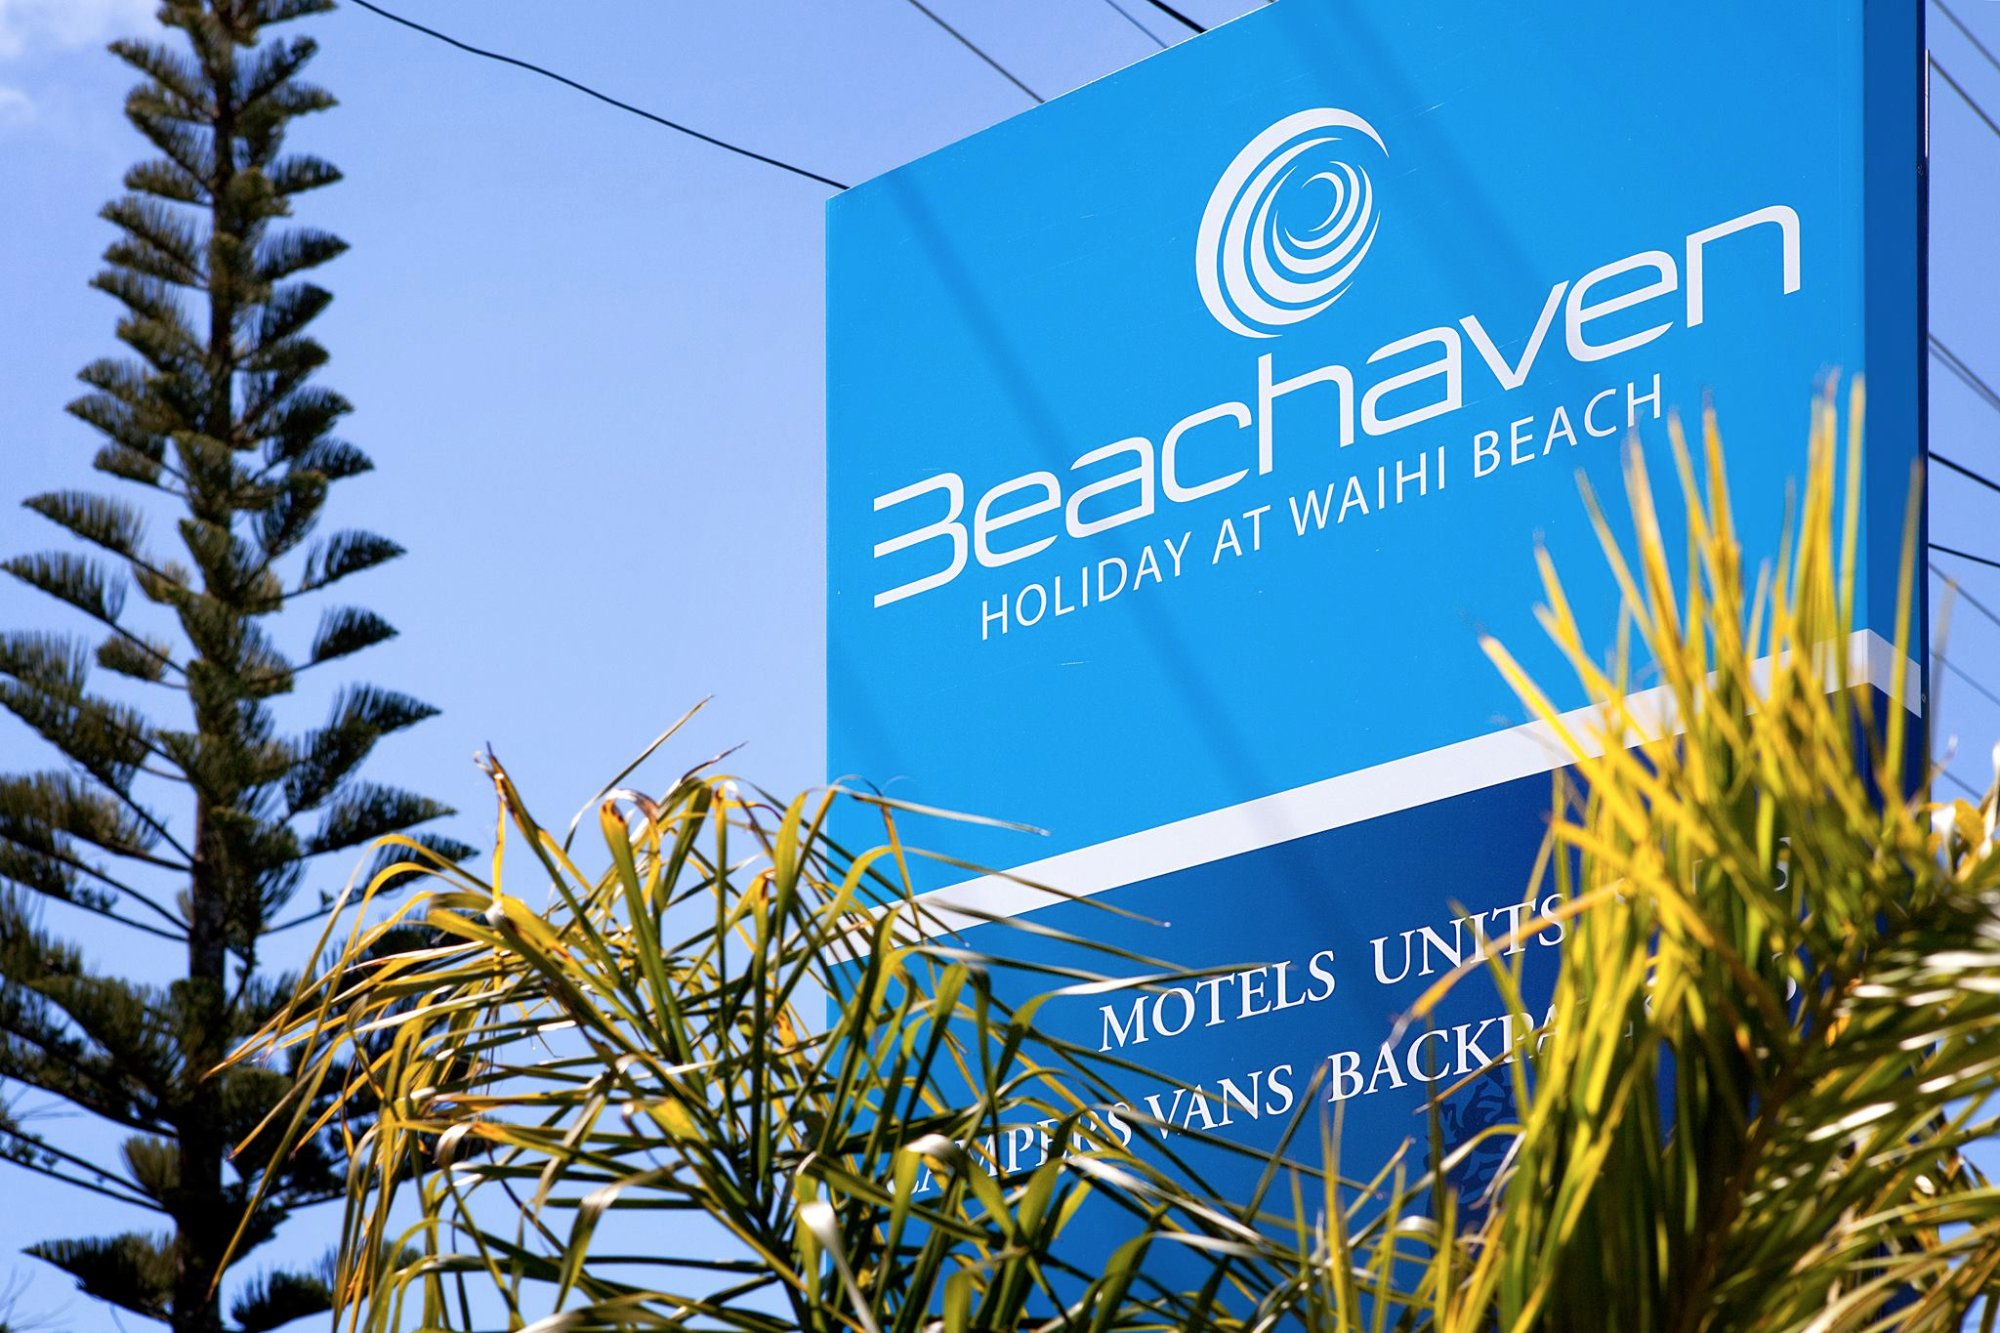 Beachaven Kiwi Holiday Park